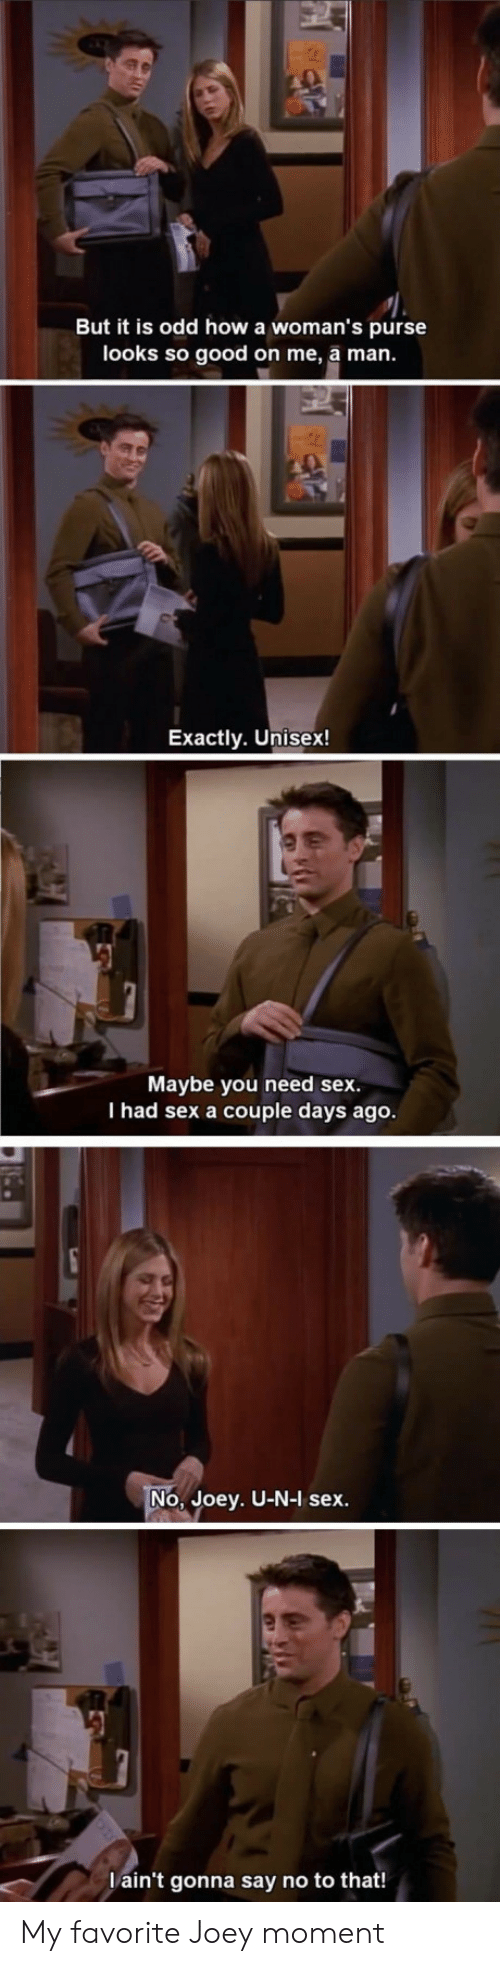 Sex, Good, and How: But it is odd how a woman's purse  looks so good on me, a man.  Exactly. Unisex!  Maybe you need sex.  I had sex a couple days ago  No, Joey. U-N-I sex  ain't gonna say no to that! My favorite Joey moment